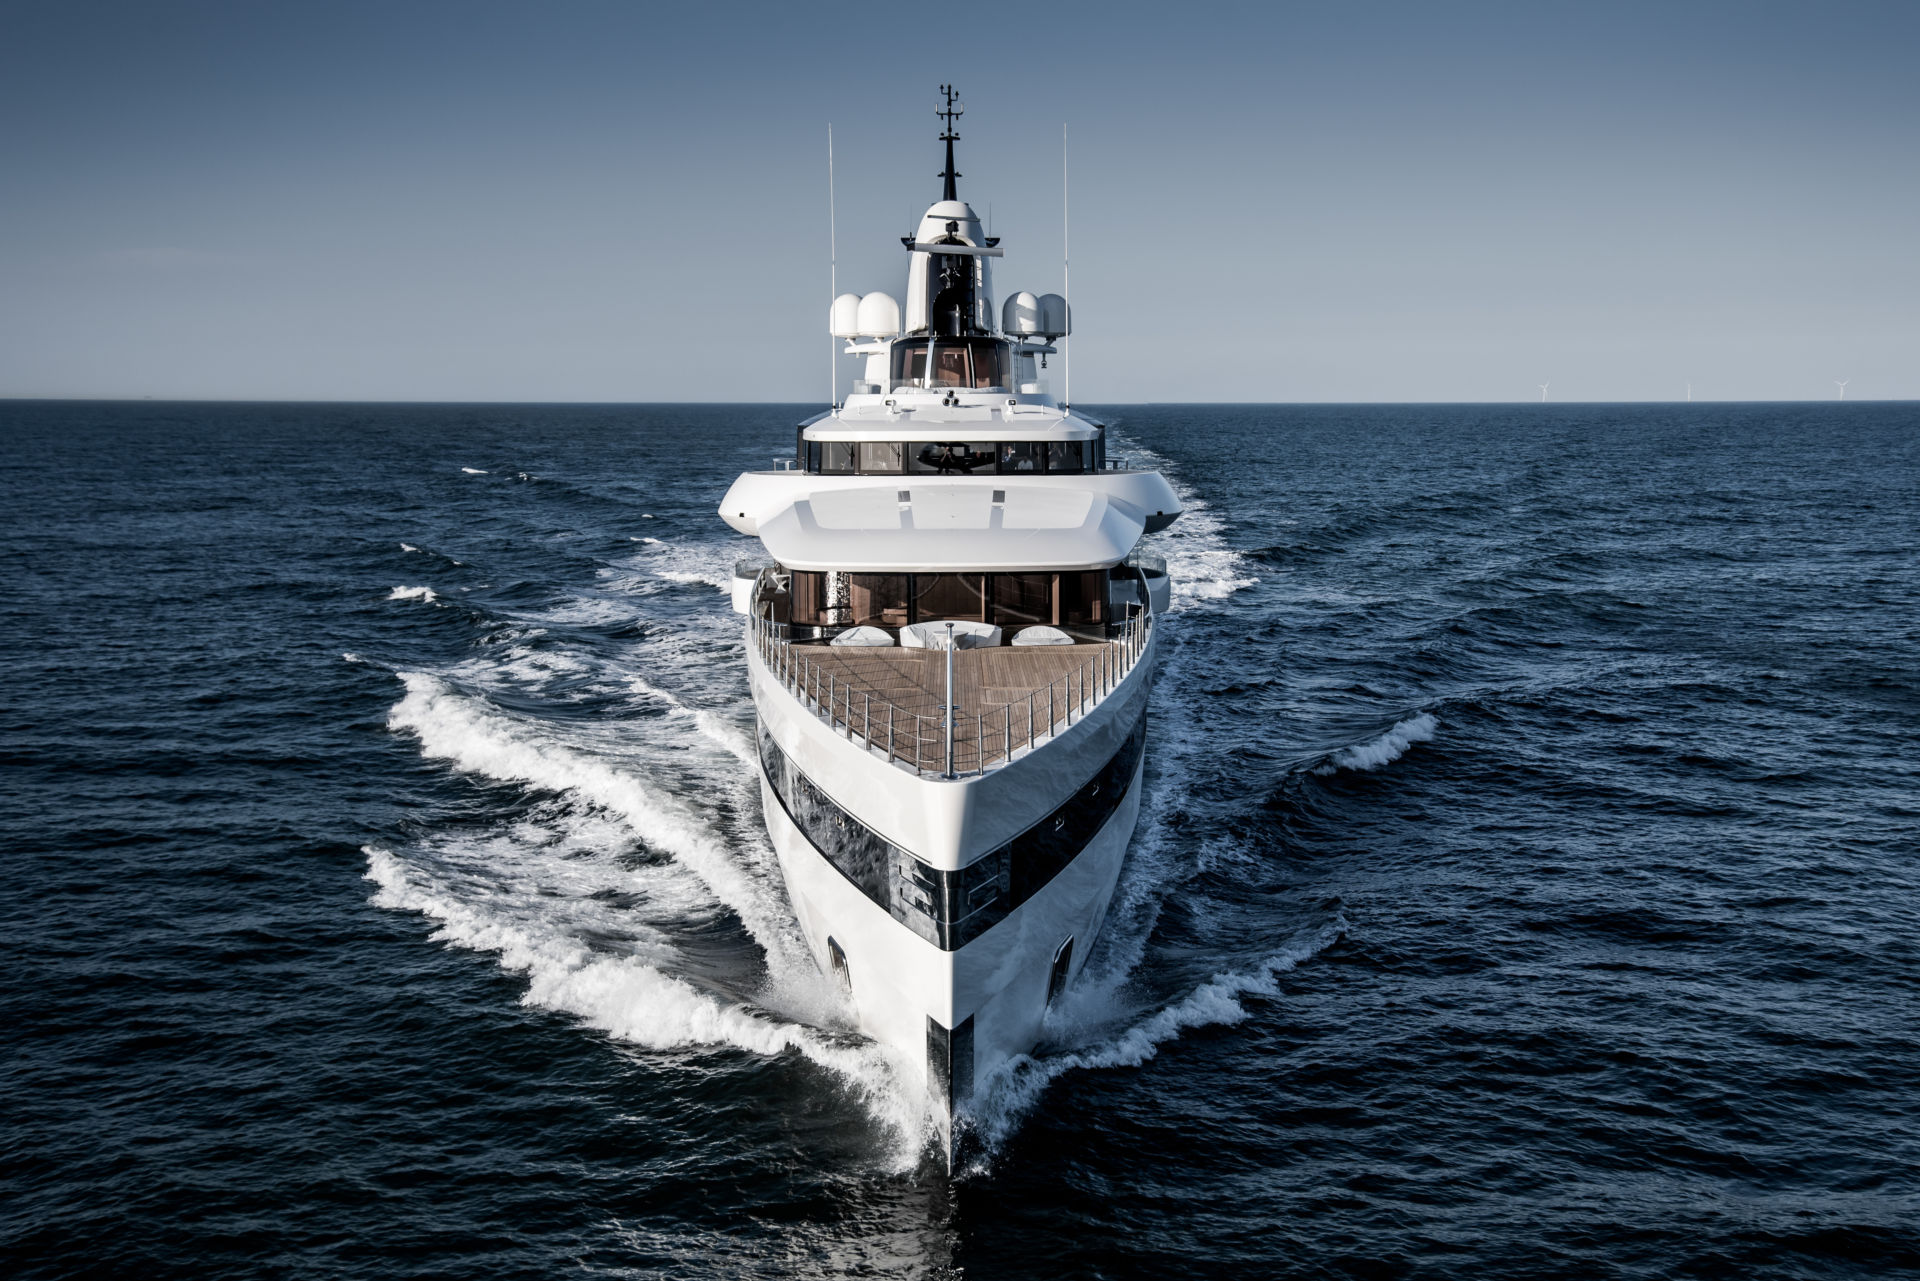 LADY S - Bow view